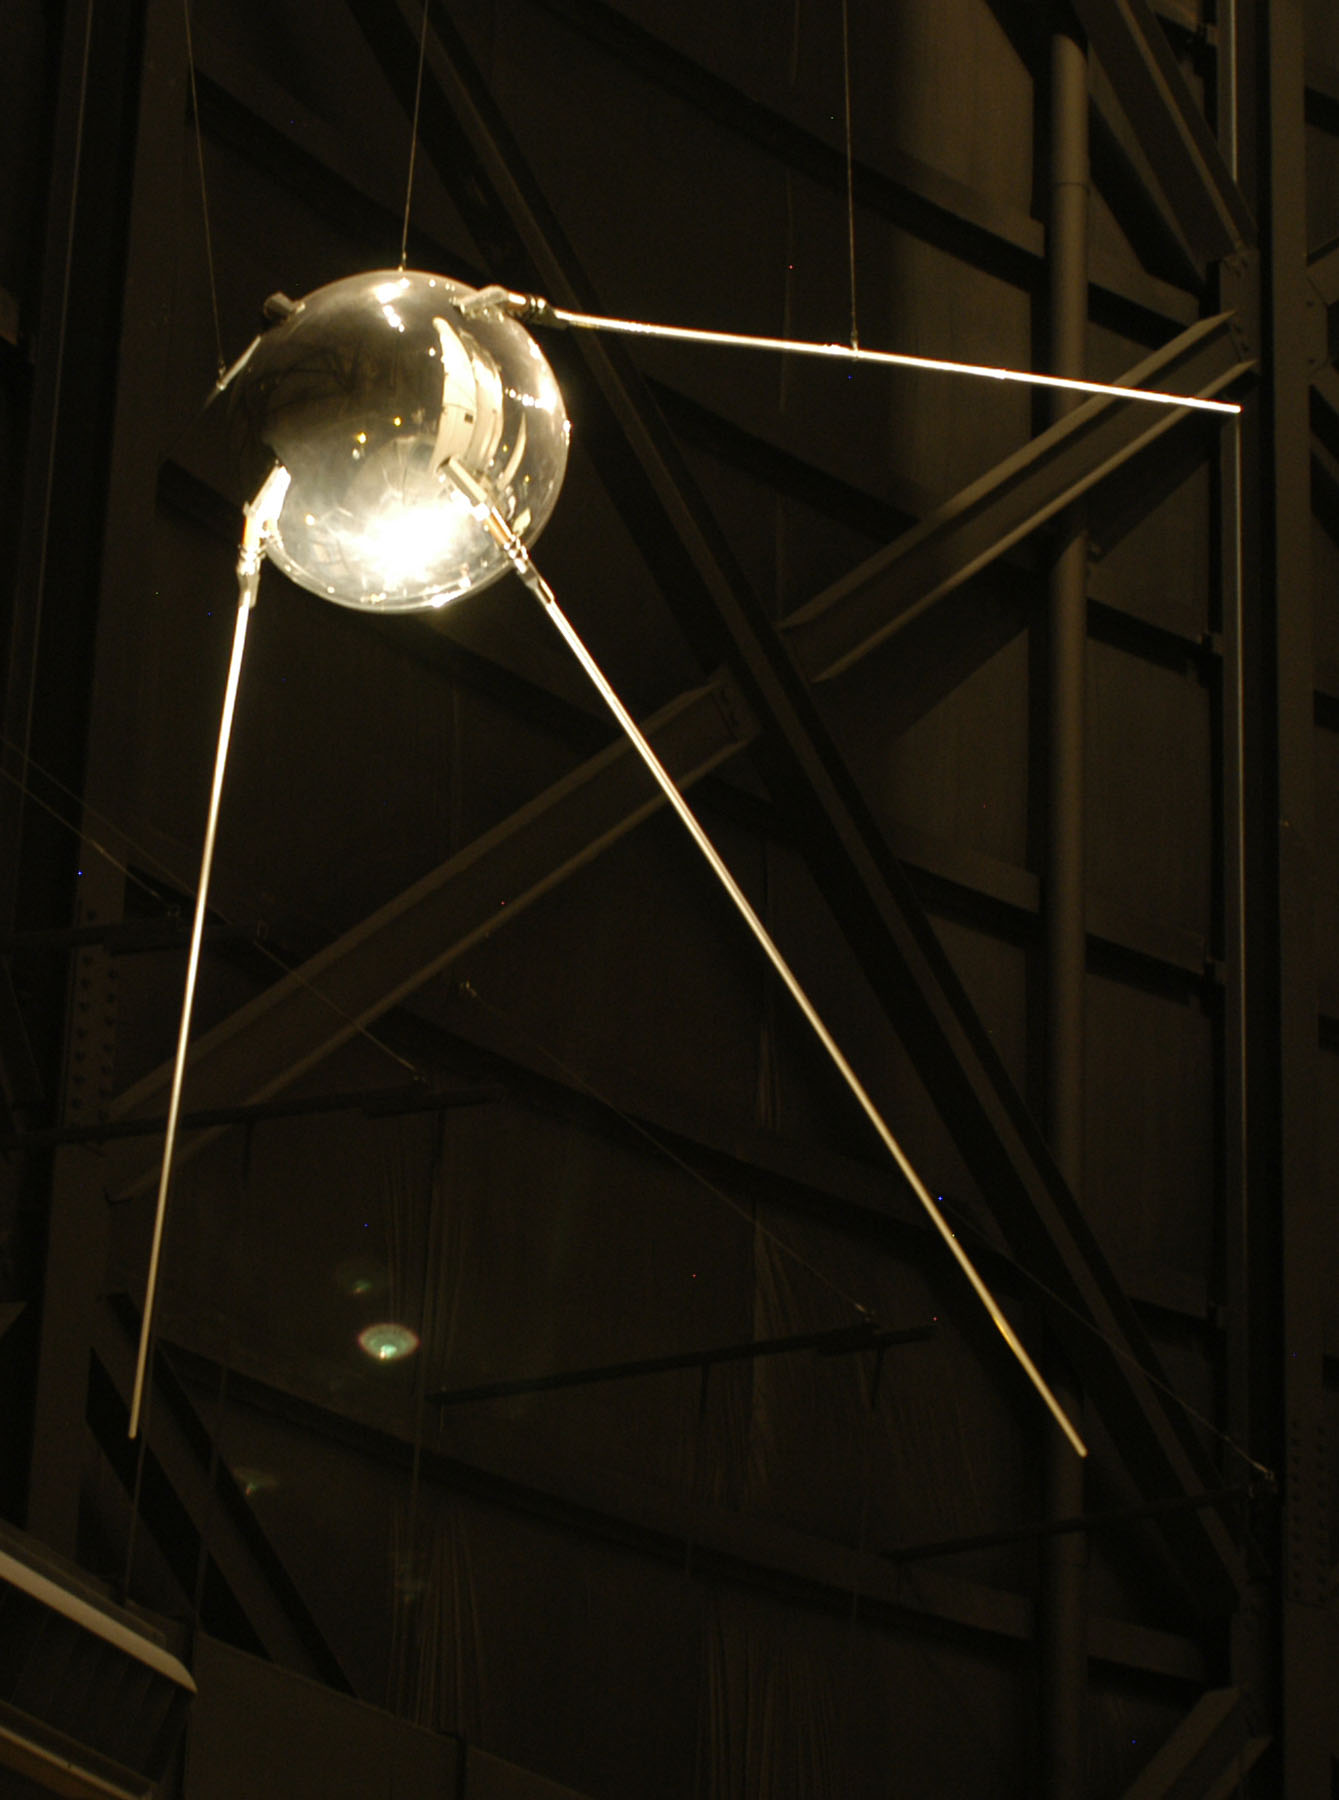 Replica of Sputnik I in National Museum of the U.S. Air Force (USAF Photo)